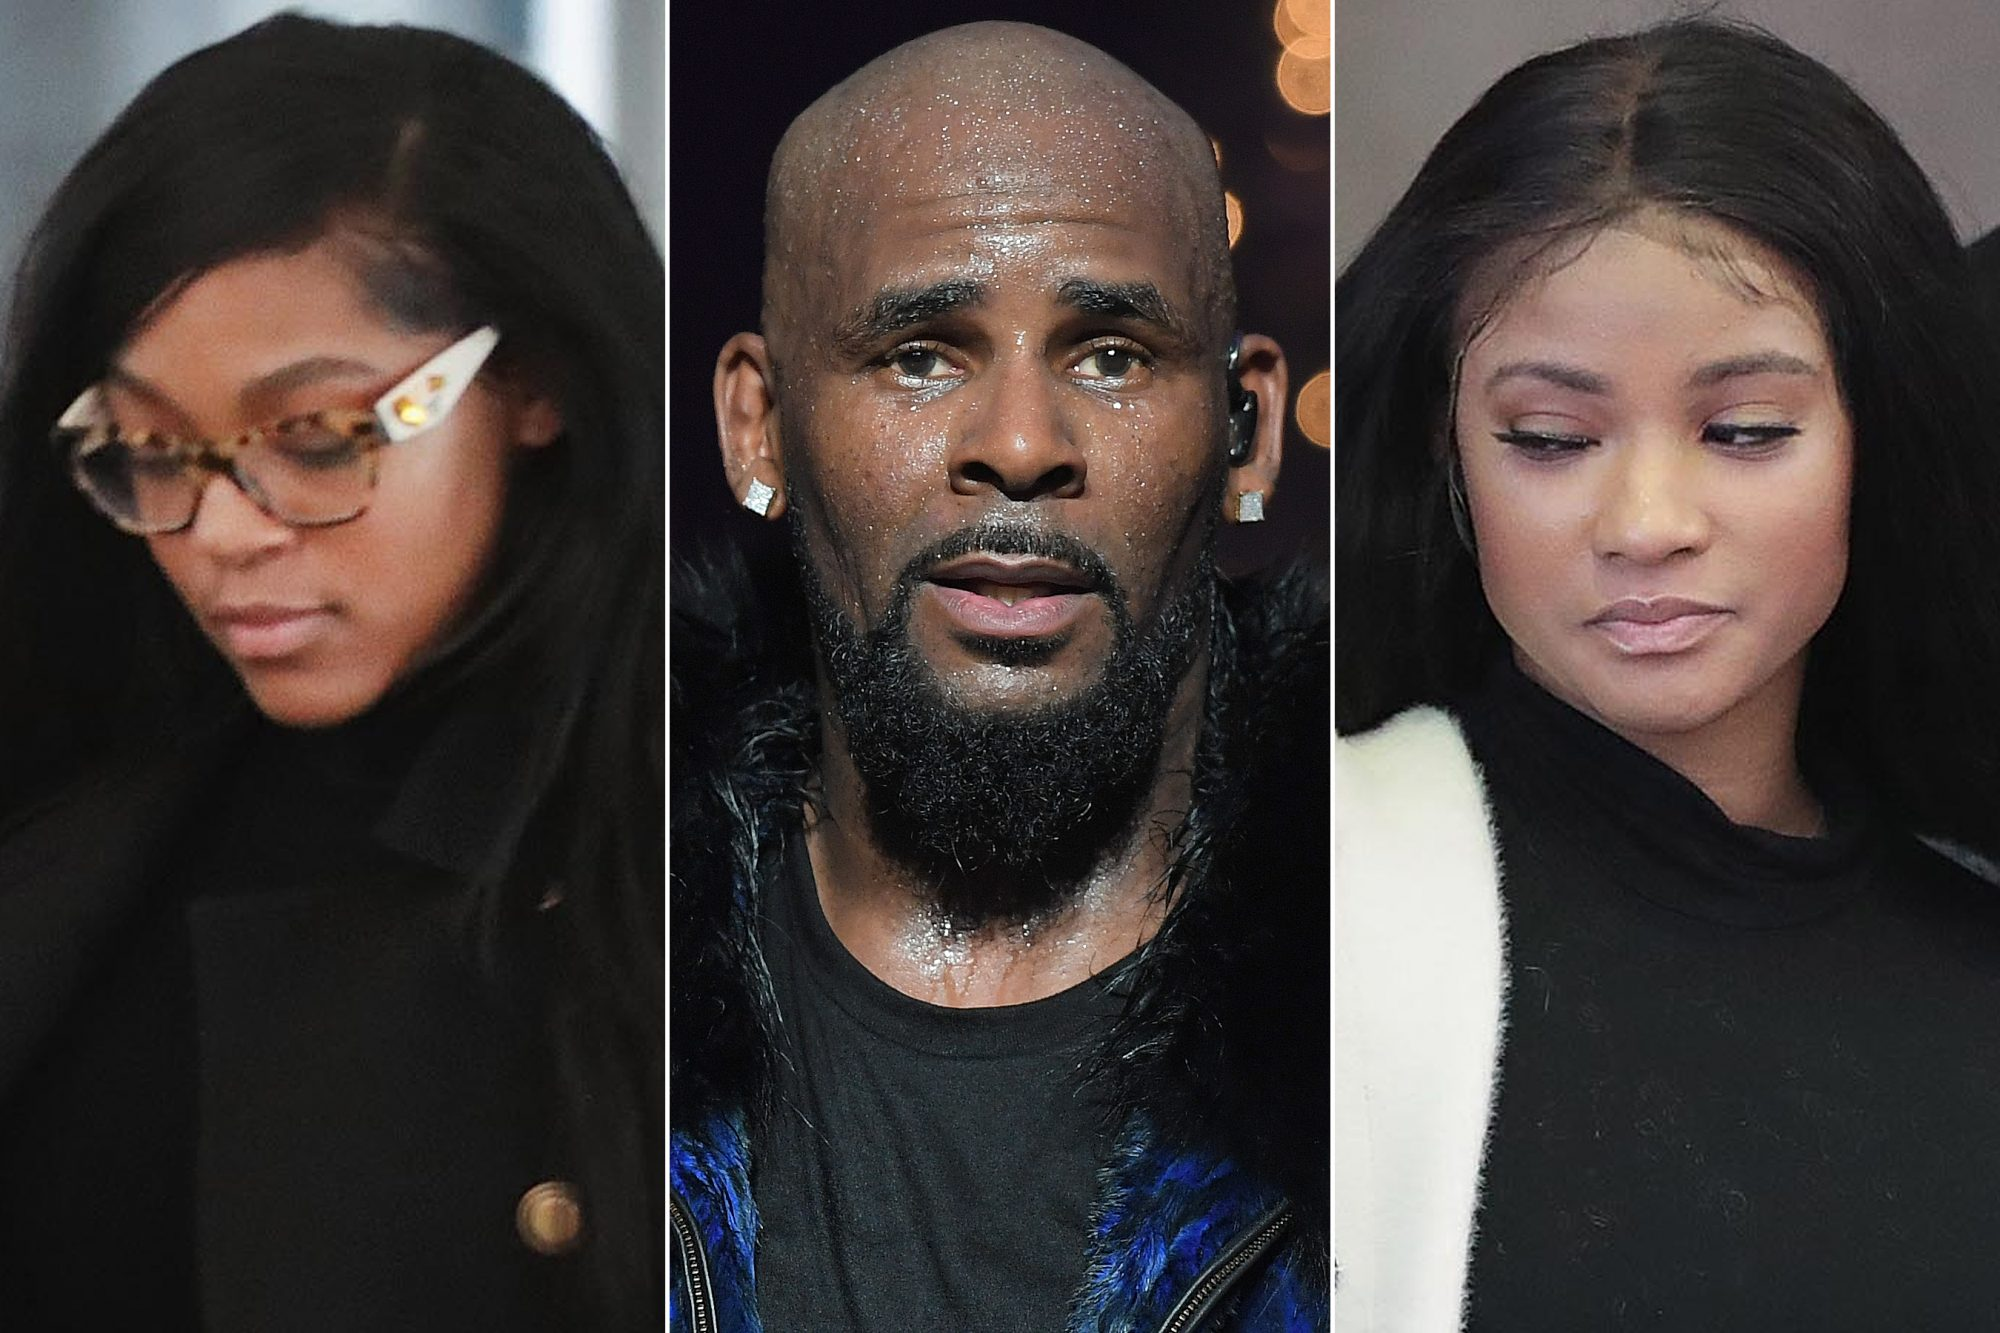 Police Rush to R. Kelly's Apartment Amid Fears His Girlfriends Had Carried Out 'Suicide Pact'